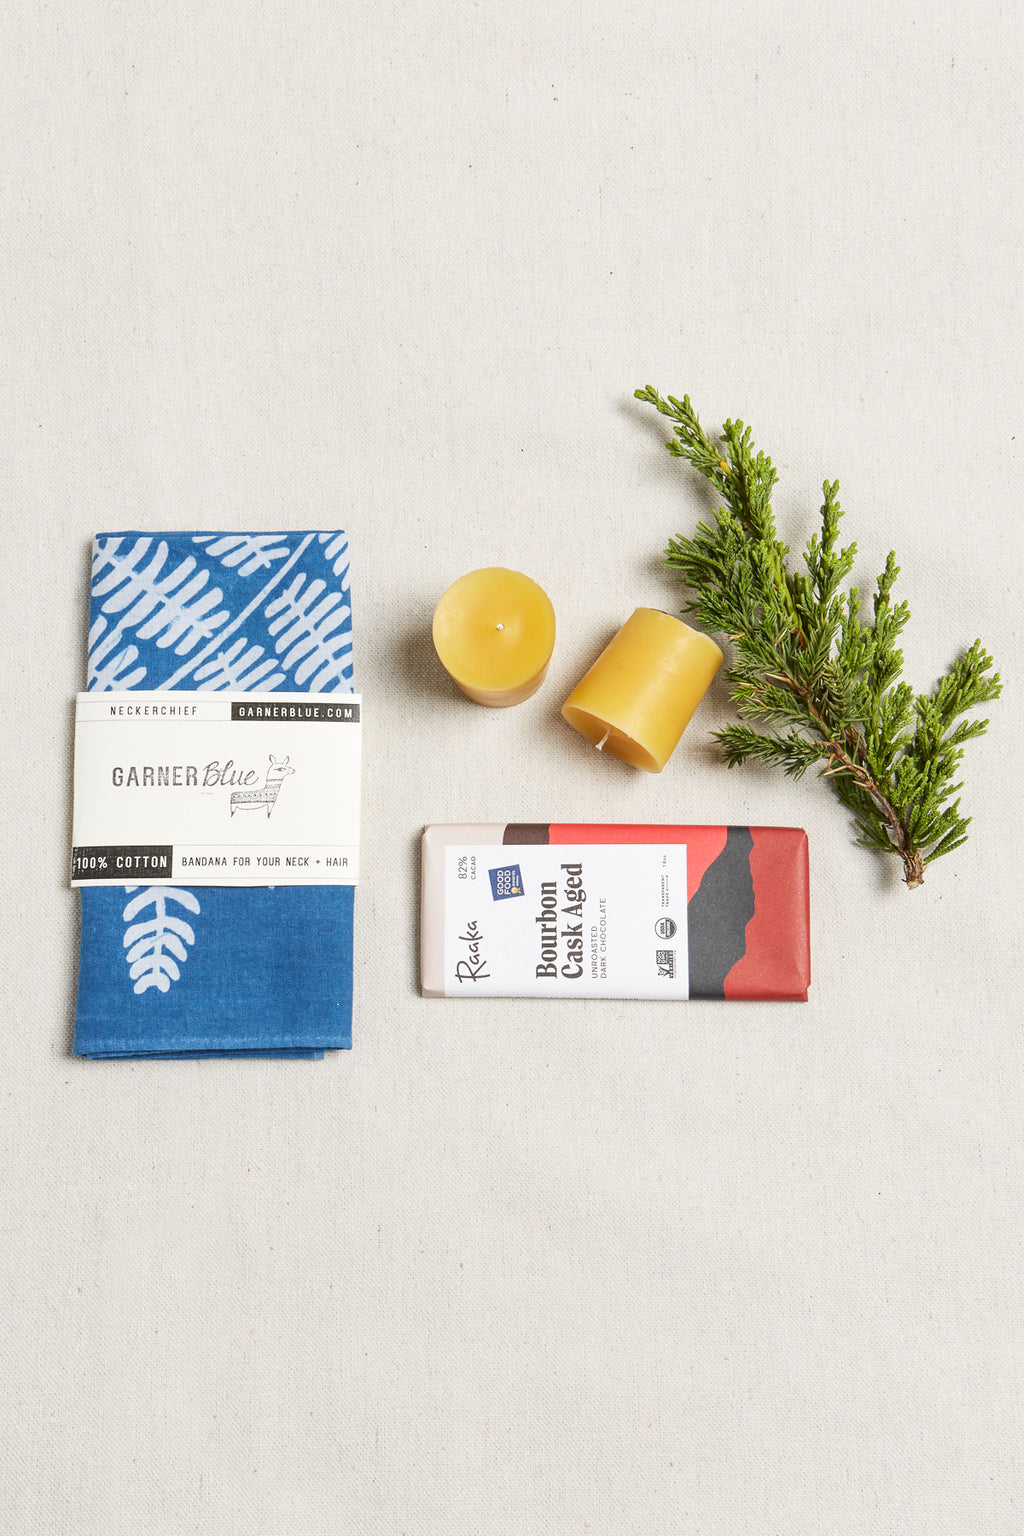 A plant & bee lovers dream! We've paired Garner Blue's natural indigo bandana with our Holiday Beeswax Votive Duo and Raaka Artisan Organic Chocolate. A bandana that not only shows it's love of plants, but also uses plant-based dye. 100% Cotton | 100% Beeswax. Handmade in Nashville by Cotton and Moss.